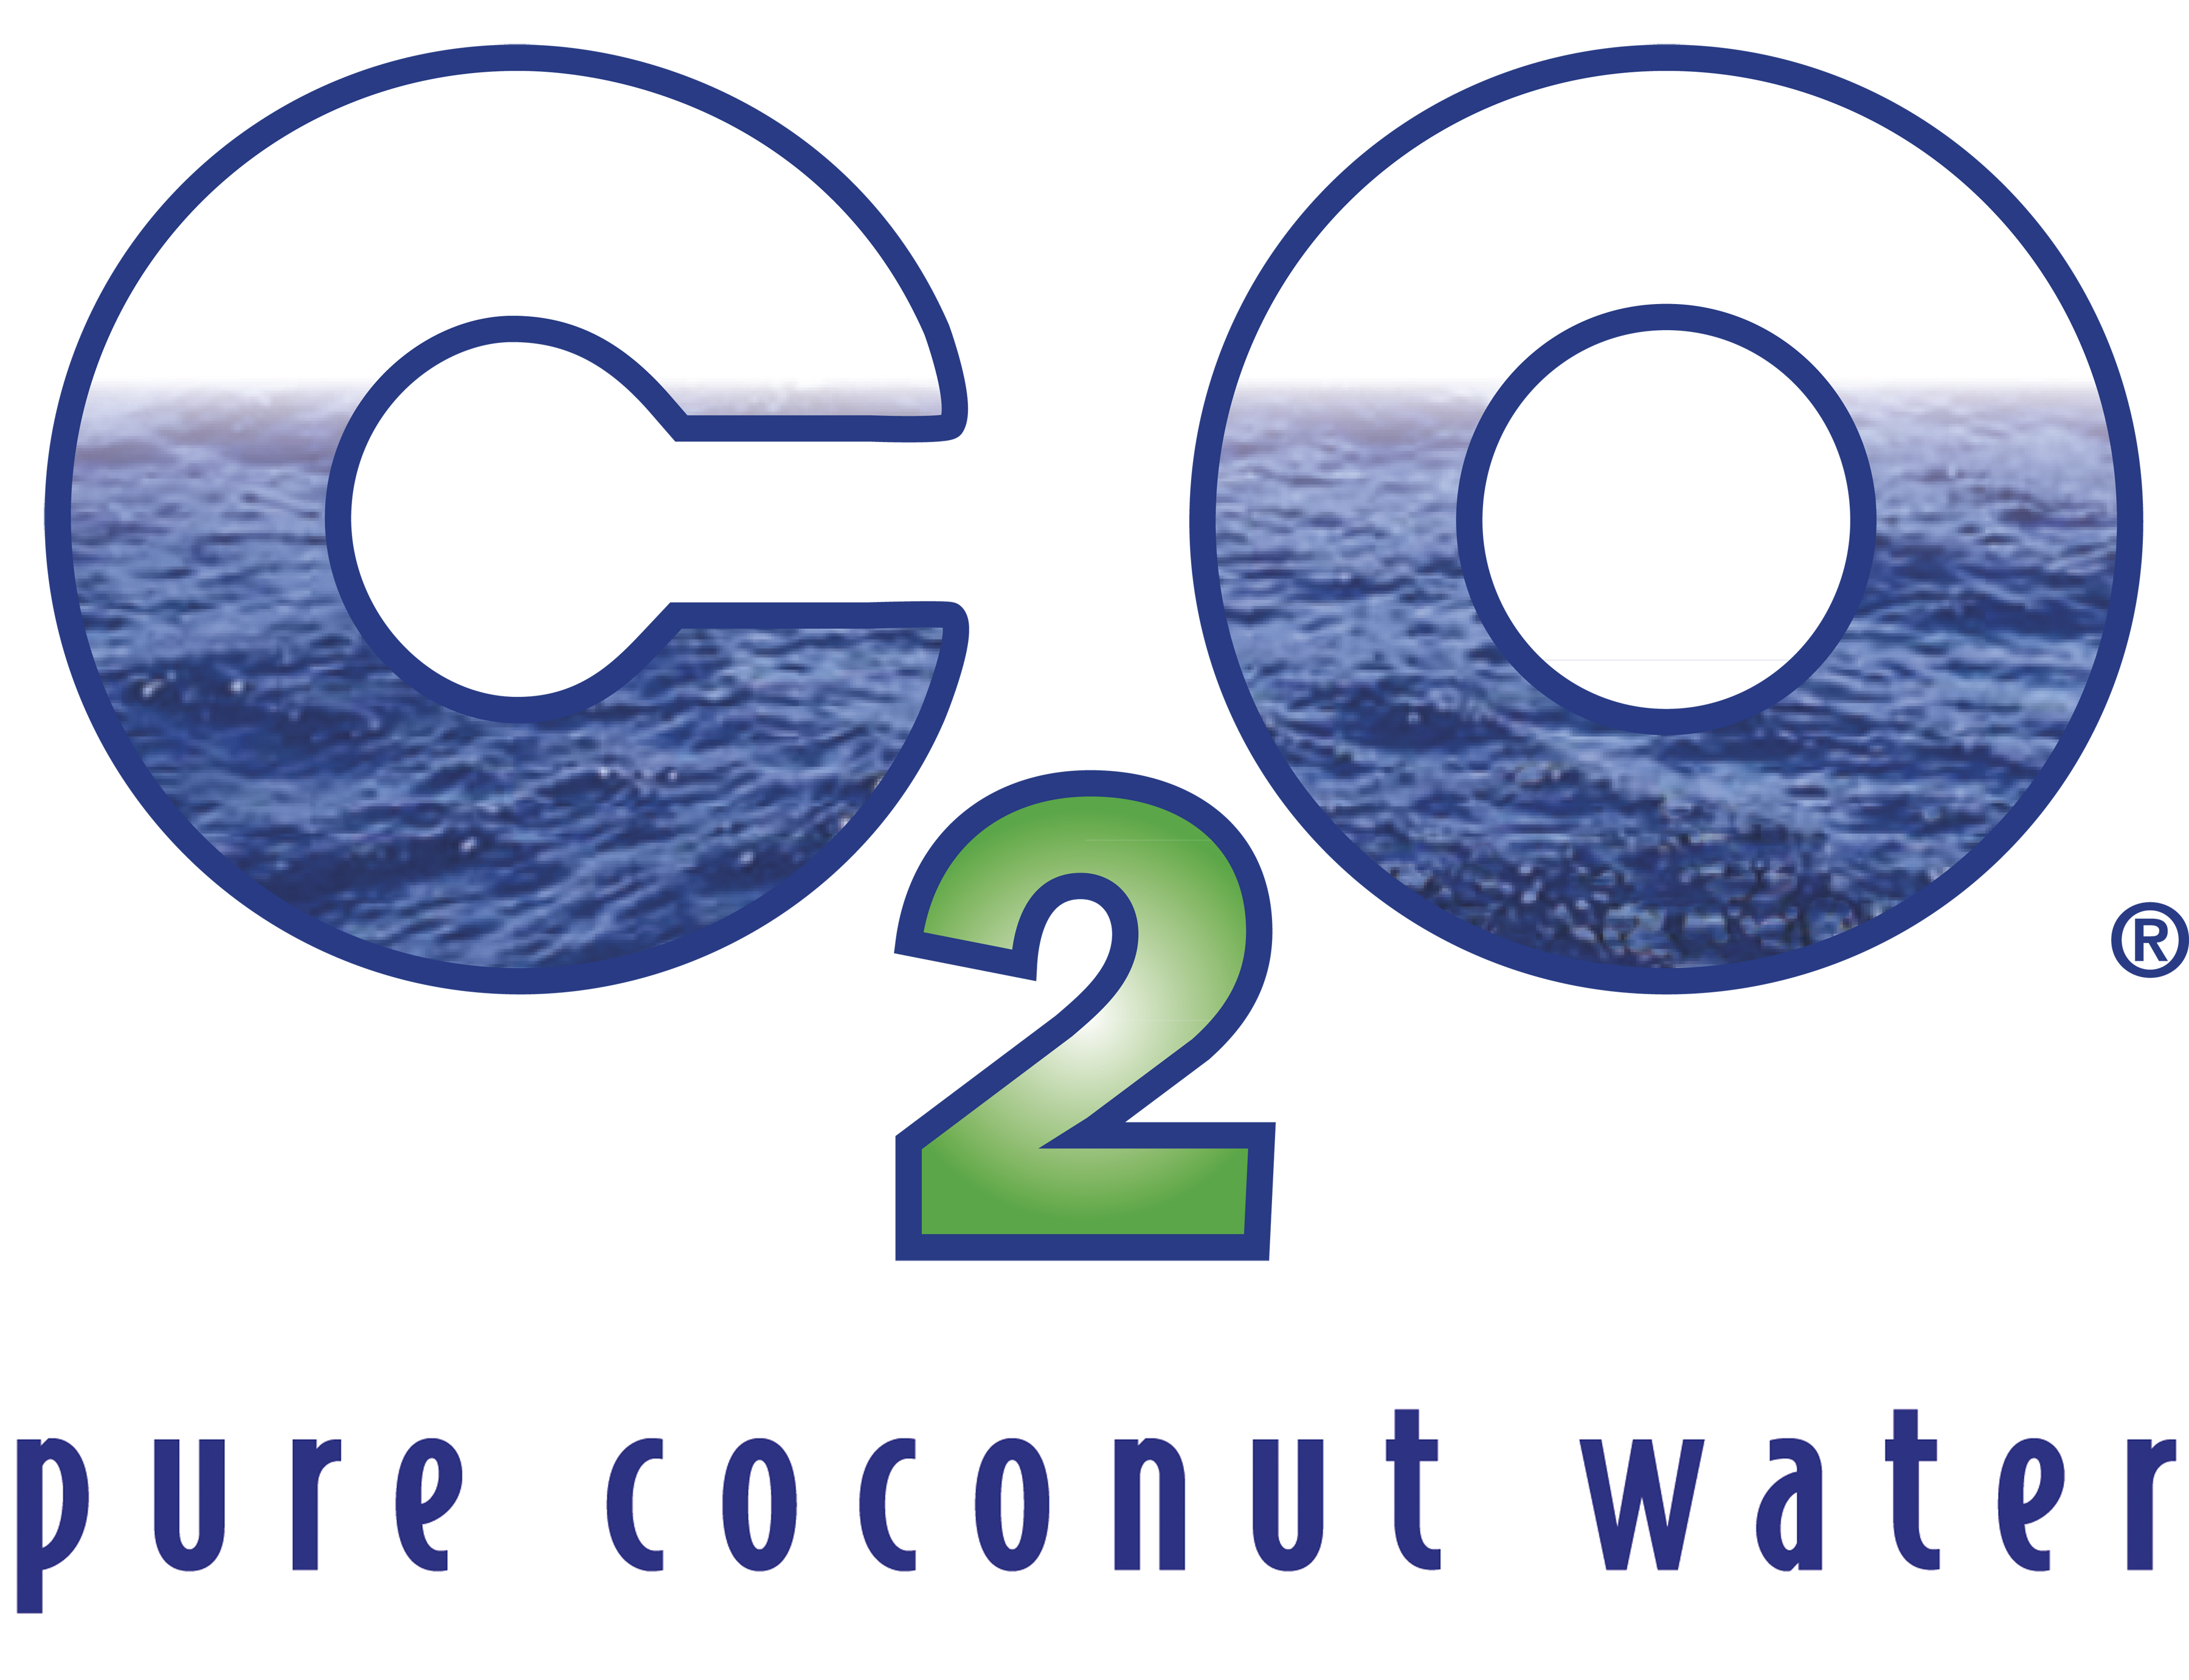 distribution channel for coconut water Coconut water has seen a surge of innovation of late with brands pushing   coconut water, there's also been a renewed focus on the natural channel,  line  of coconut water and juice blends, which zico director of marketing.